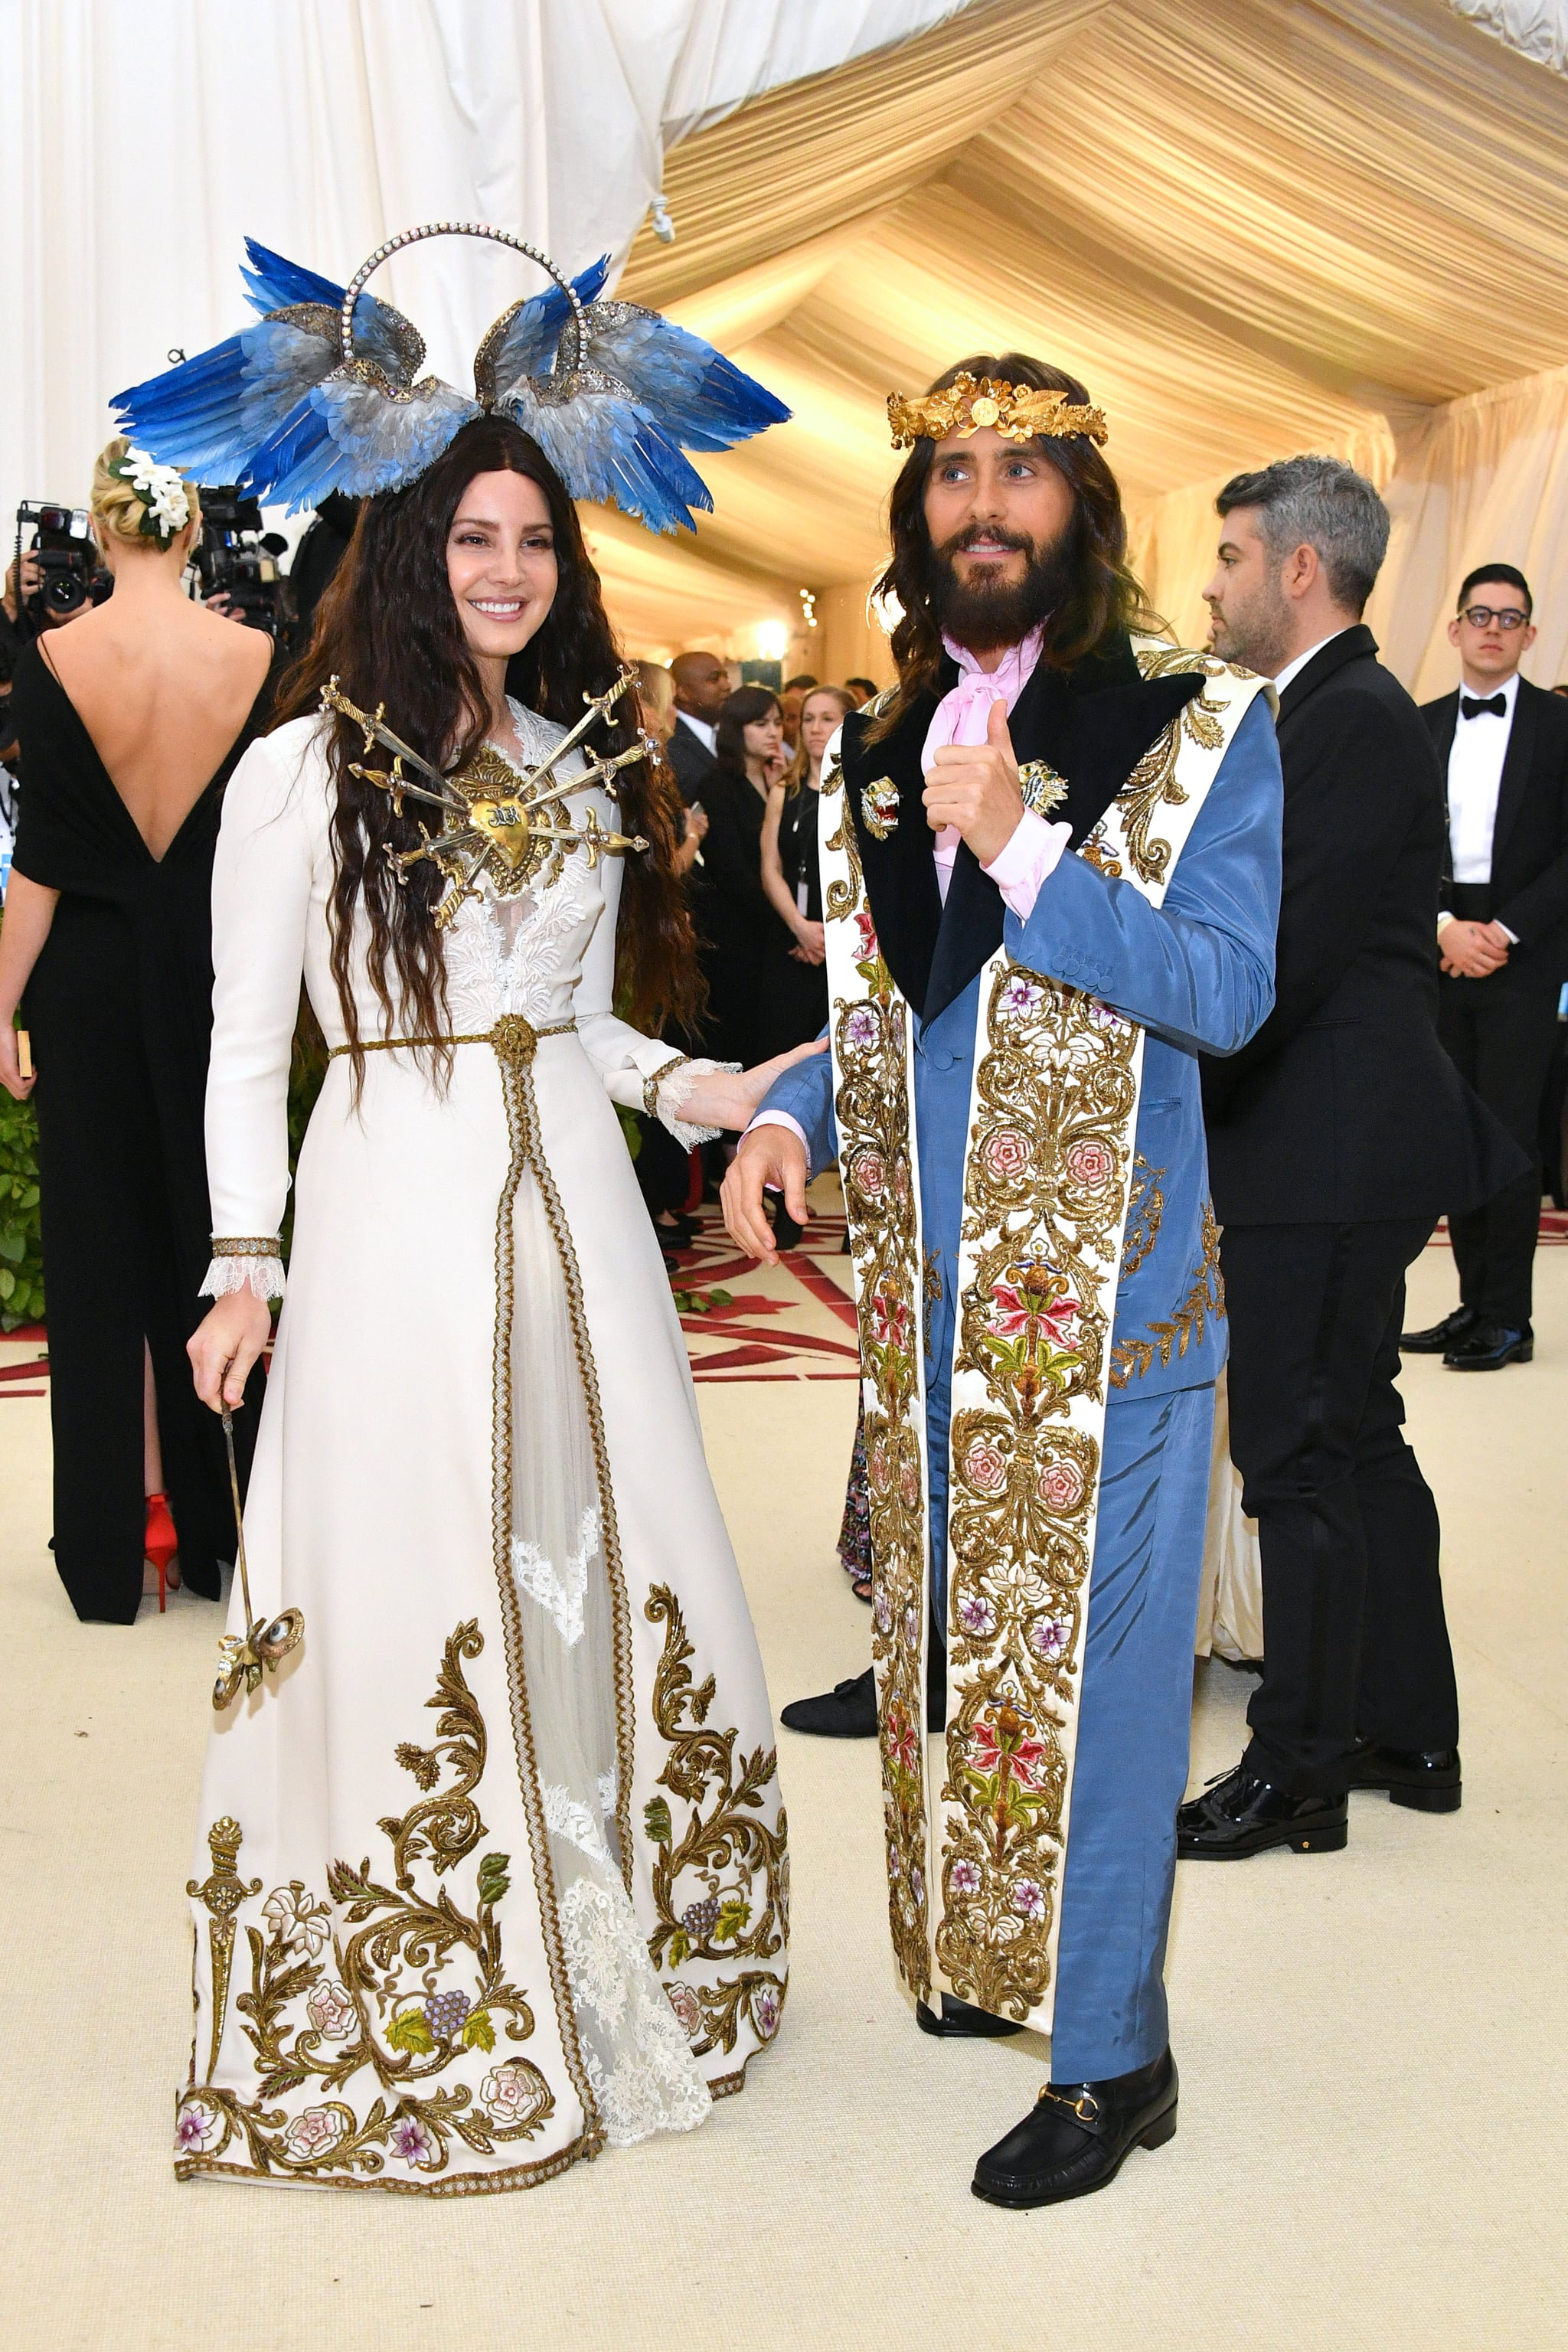 NEW YORK, NY - MAY 07:  Lana Del Rey and Jared Leto attend the Heavenly Bodies: Fashion & The Catholic Imagination Costume Institute Gala at The Metropolitan Museum of Art on May 7, 2018 in New York City.  (Photo by Dia Dipasupil/WireImage)